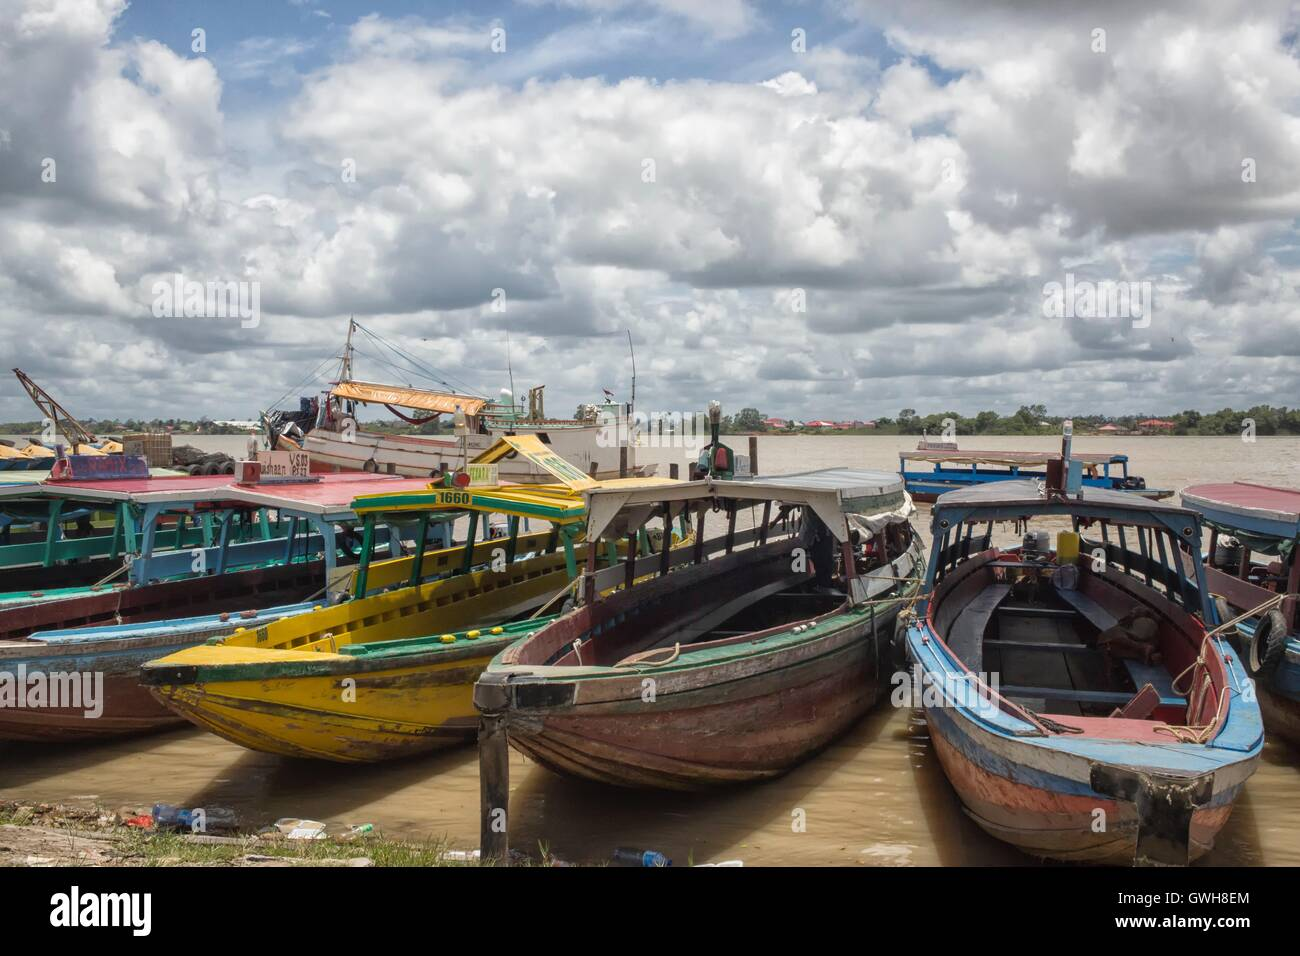 Colorful wooden boats in Paramaribo - Stock Image